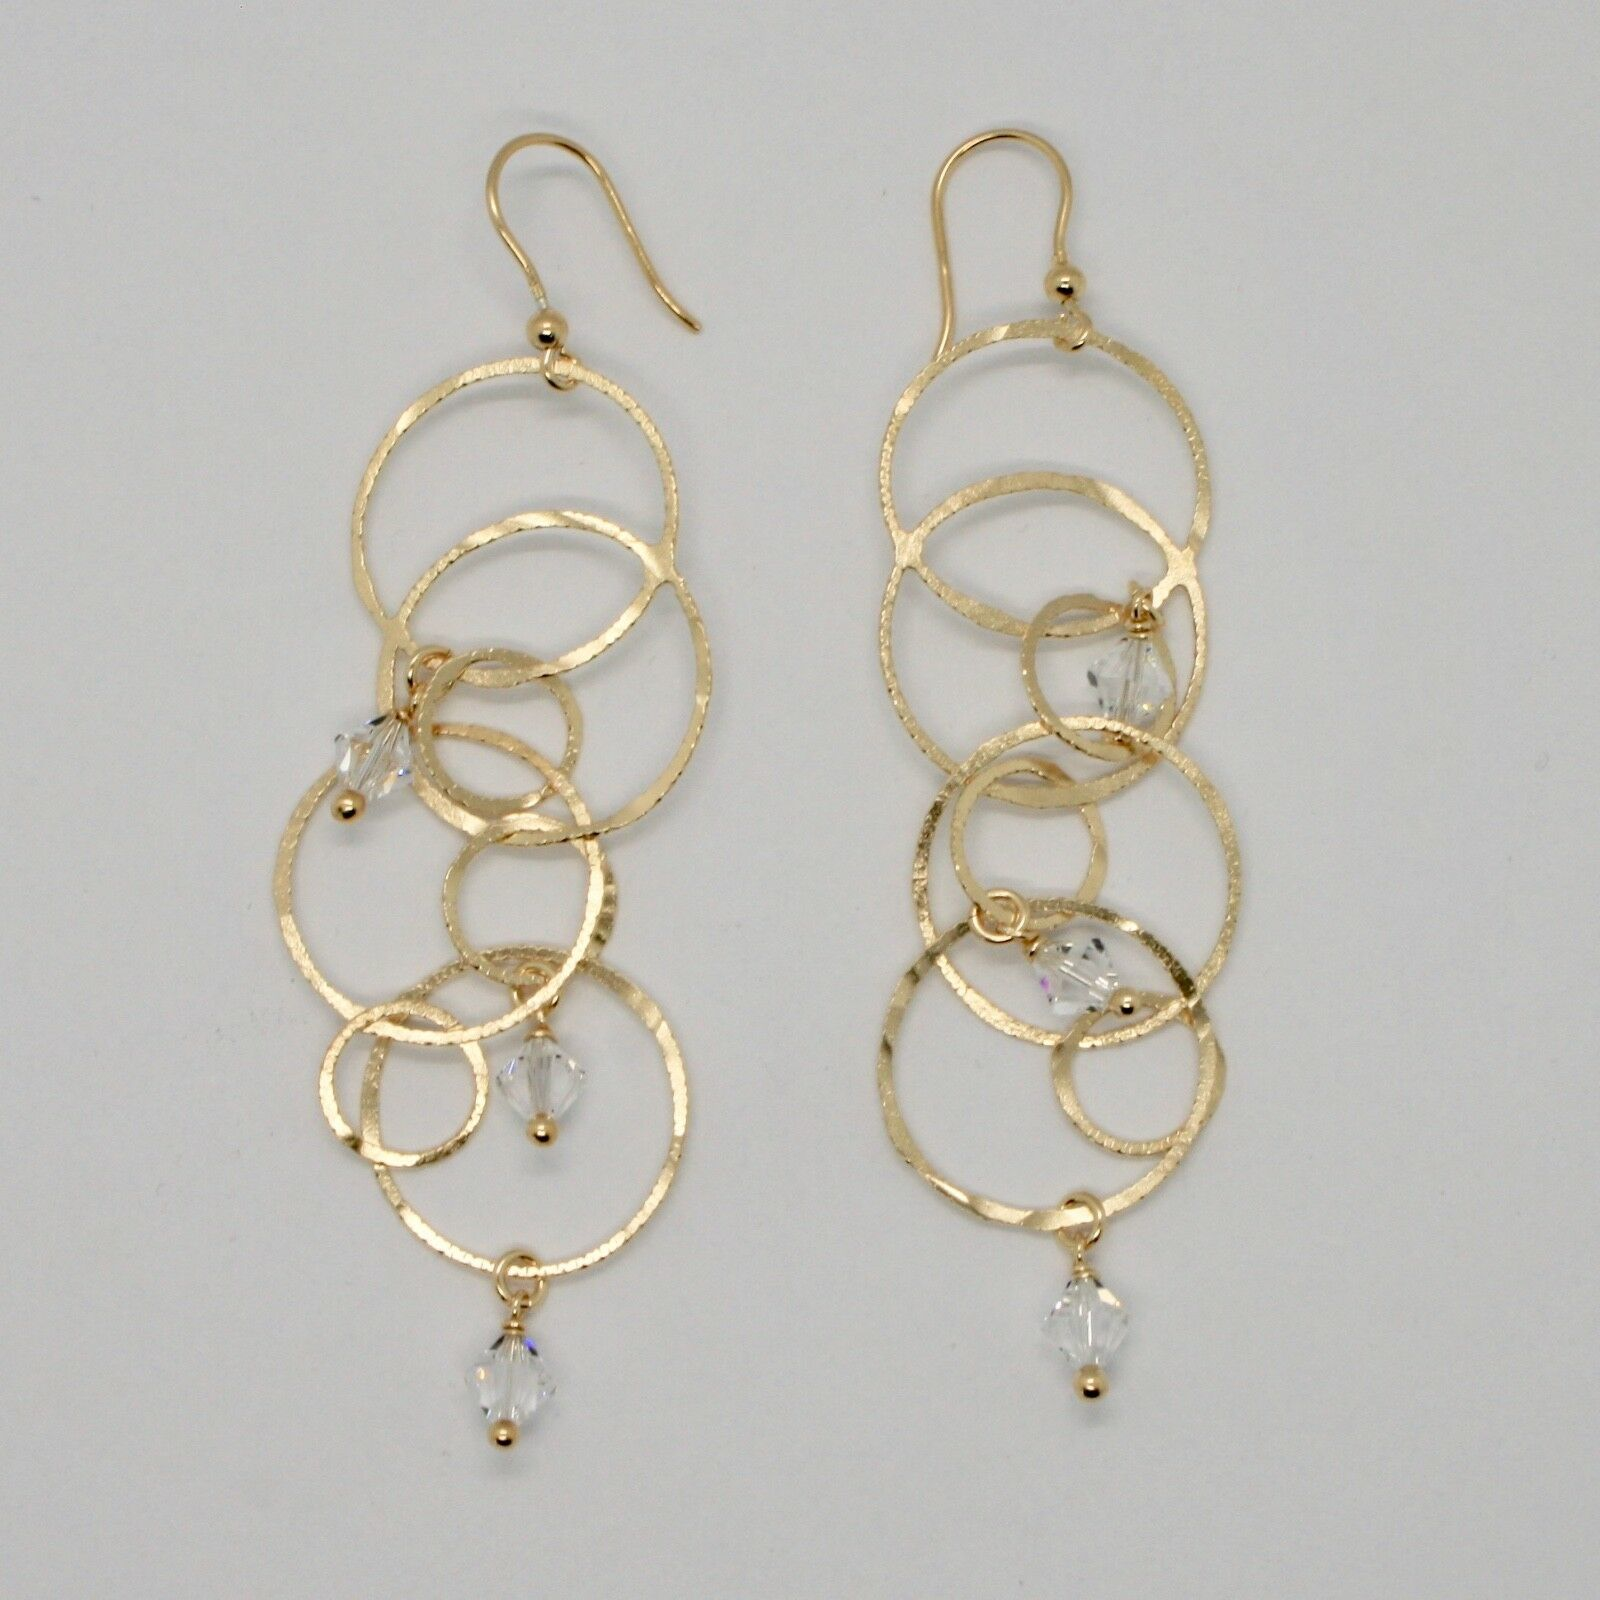 EARRINGS HANGING 925 SILVER LAMINA GOLD CIRCLES BY MARY JANE IELPO MADE IN ITALY